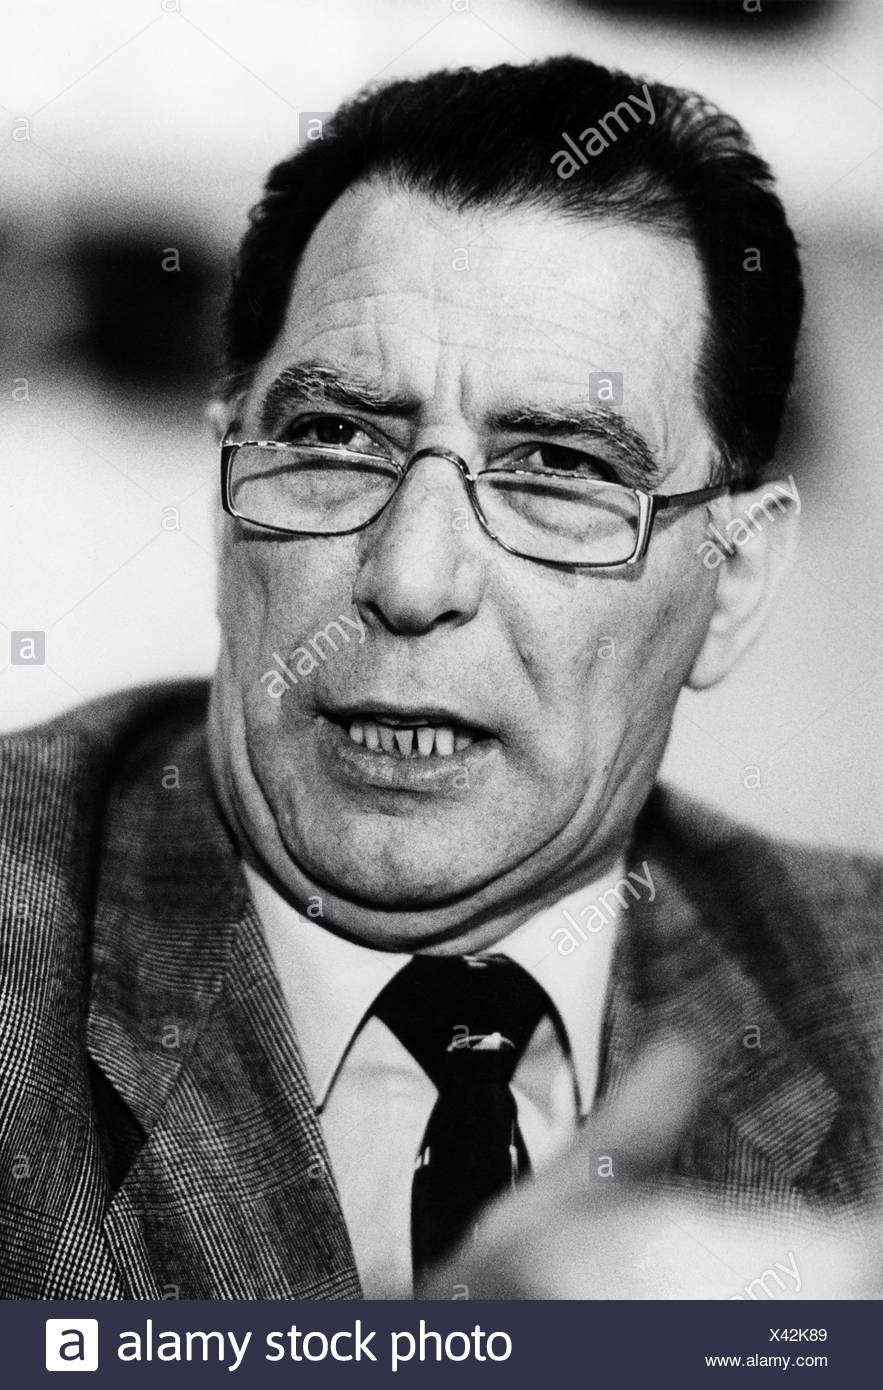 Geuenich, Michael, member of the German Confederation of Trade Unions, portrait, 1985, union, glasses, unionist, - Stock Image